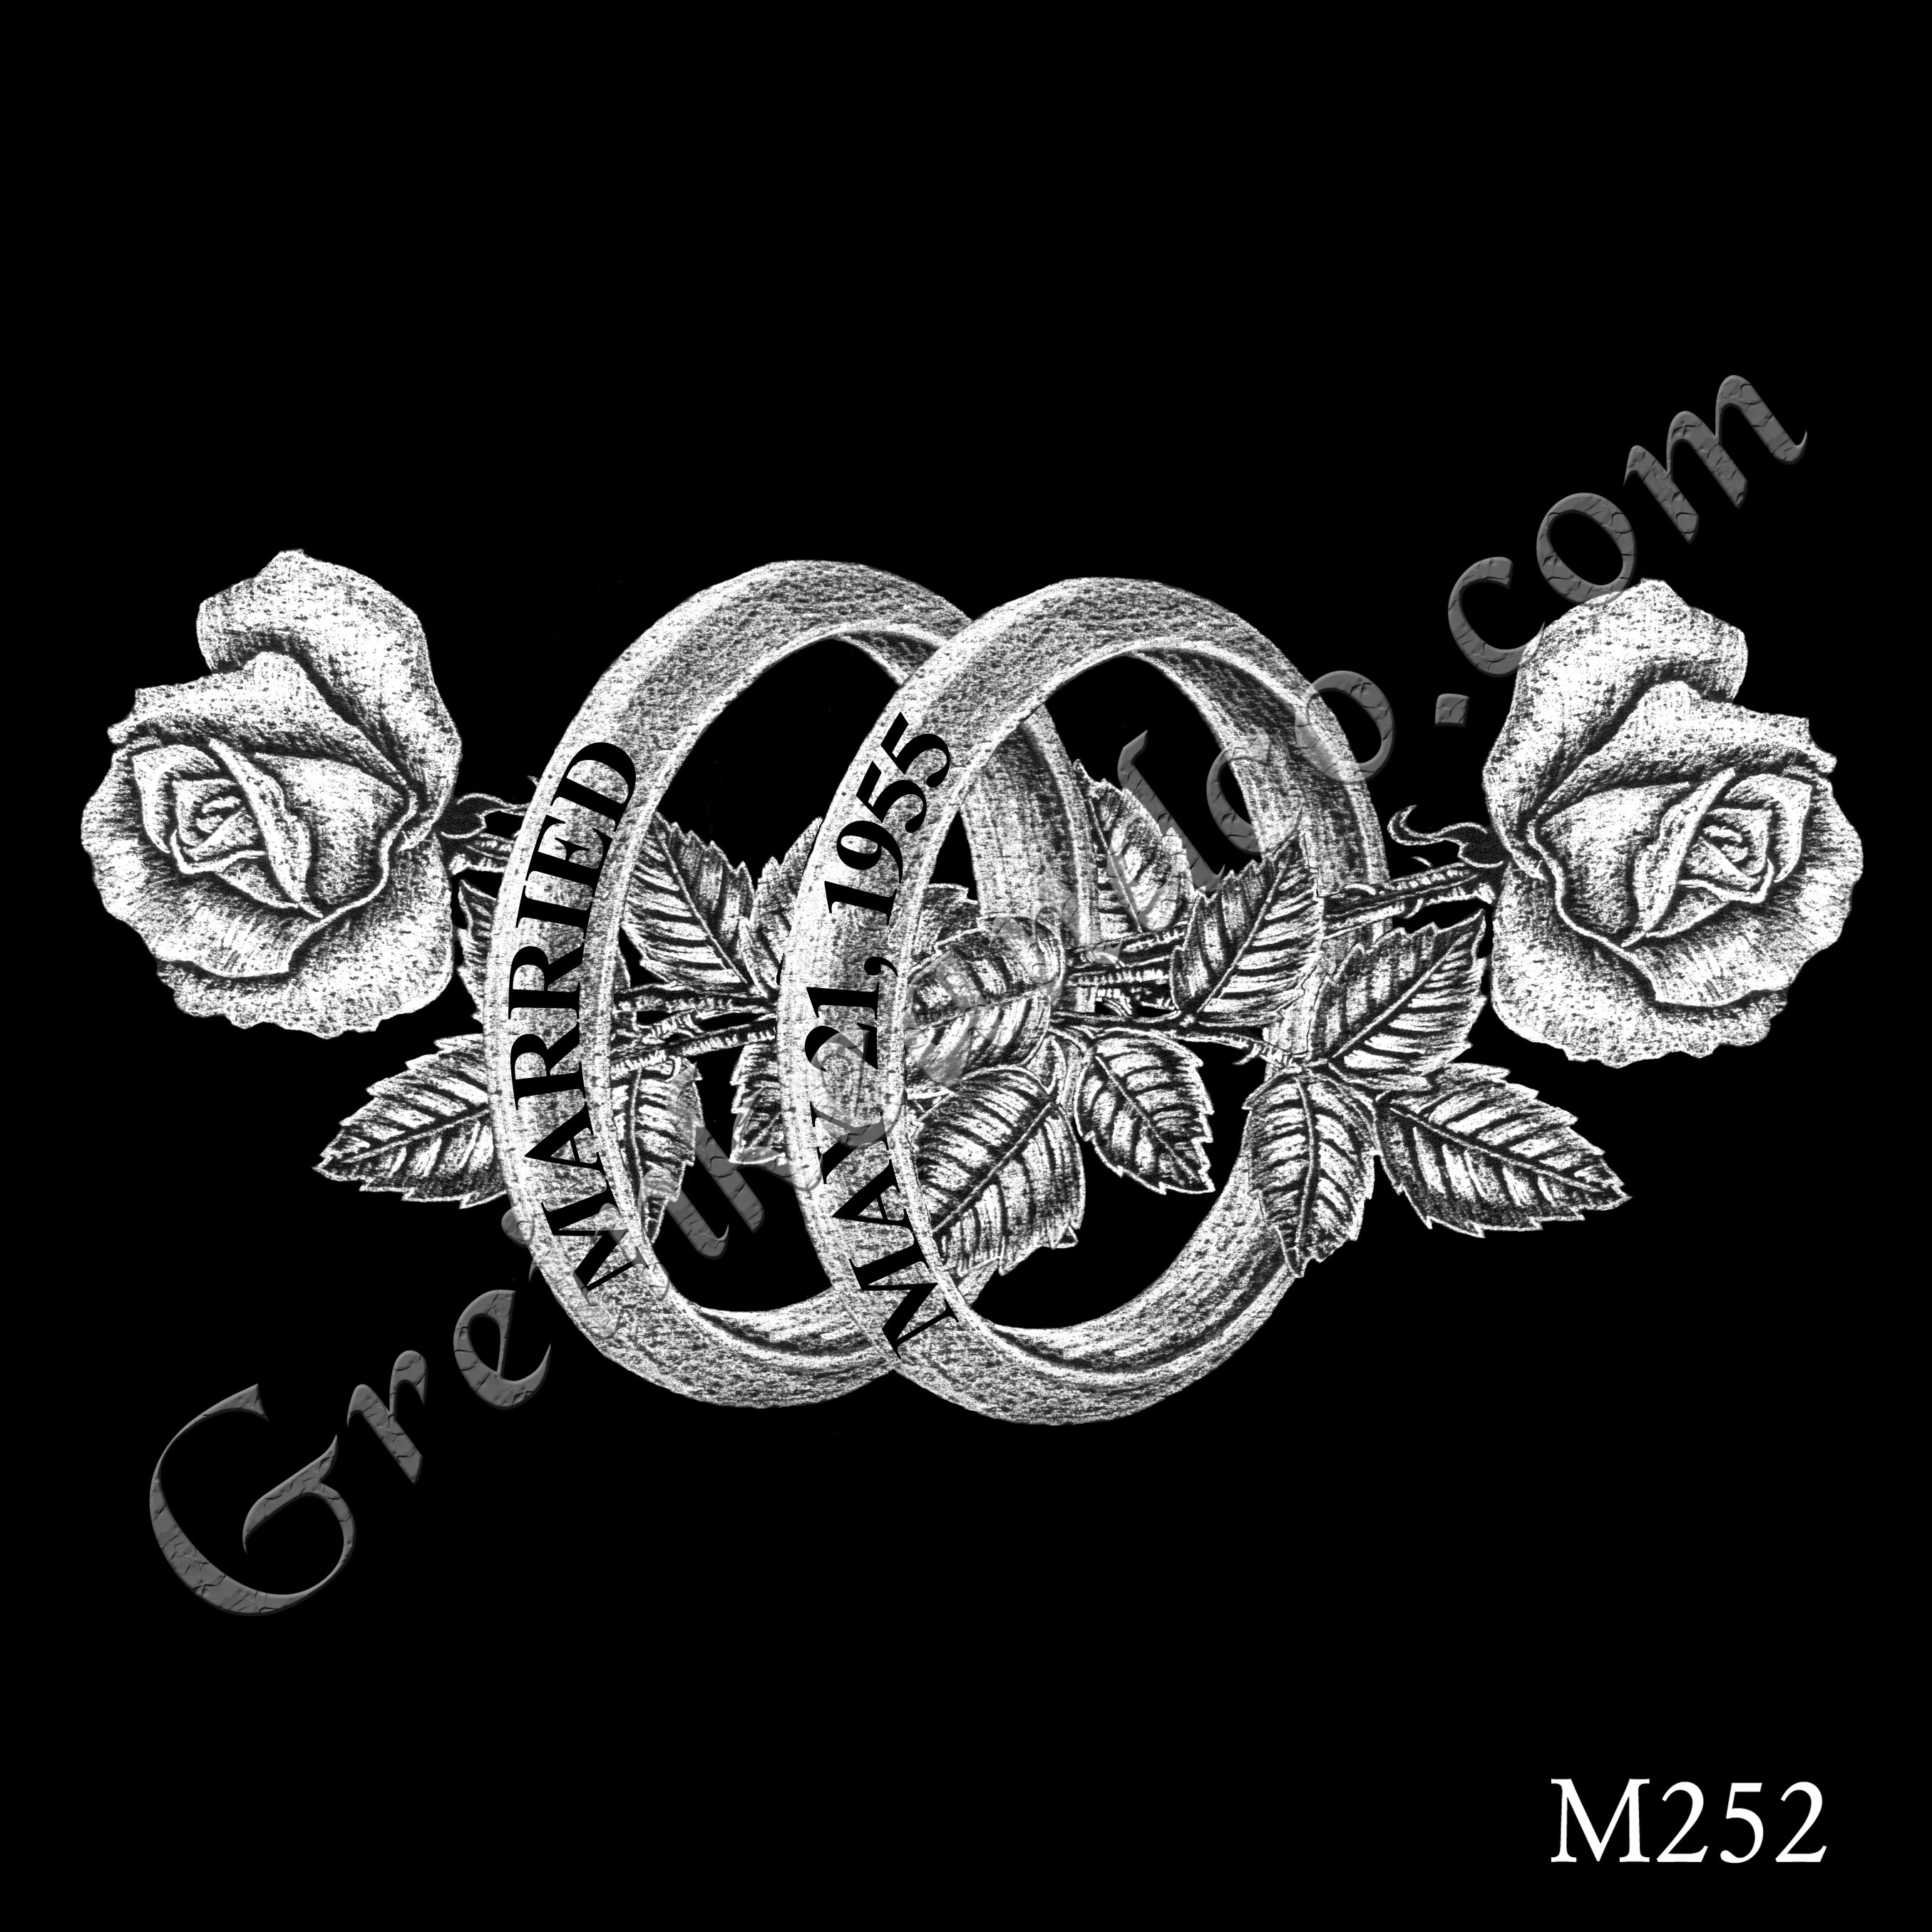 parallel vertical wedding bands with dates on them, two long stem roses horizontally pass through the centers of the rings